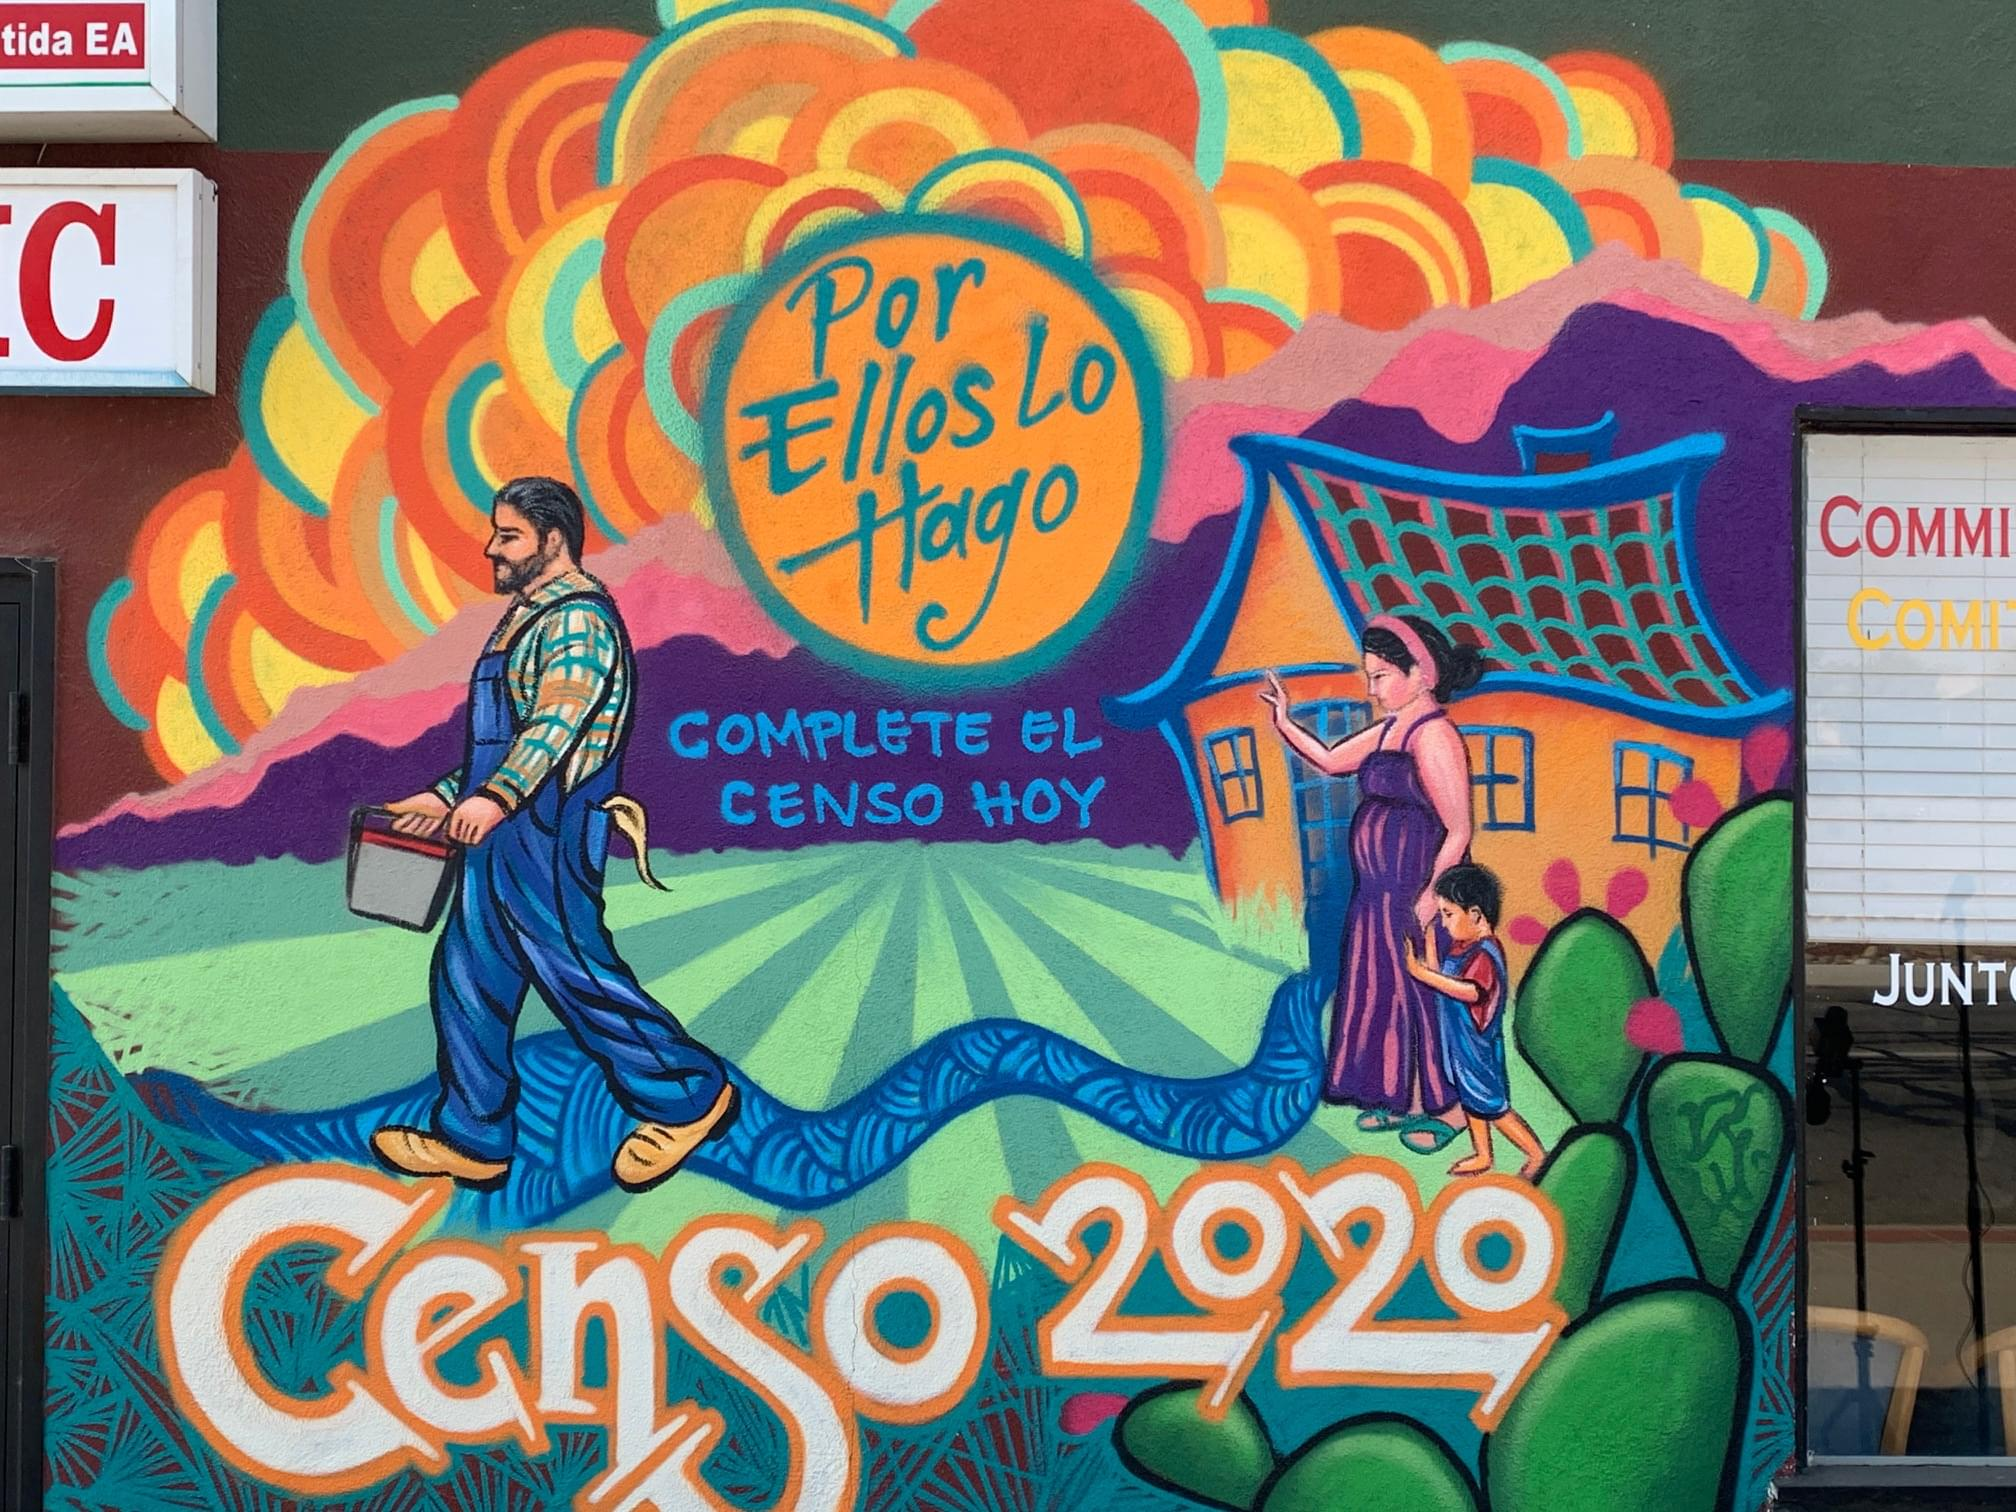 New Mural in Arvin Pushes Residents to Complete Census